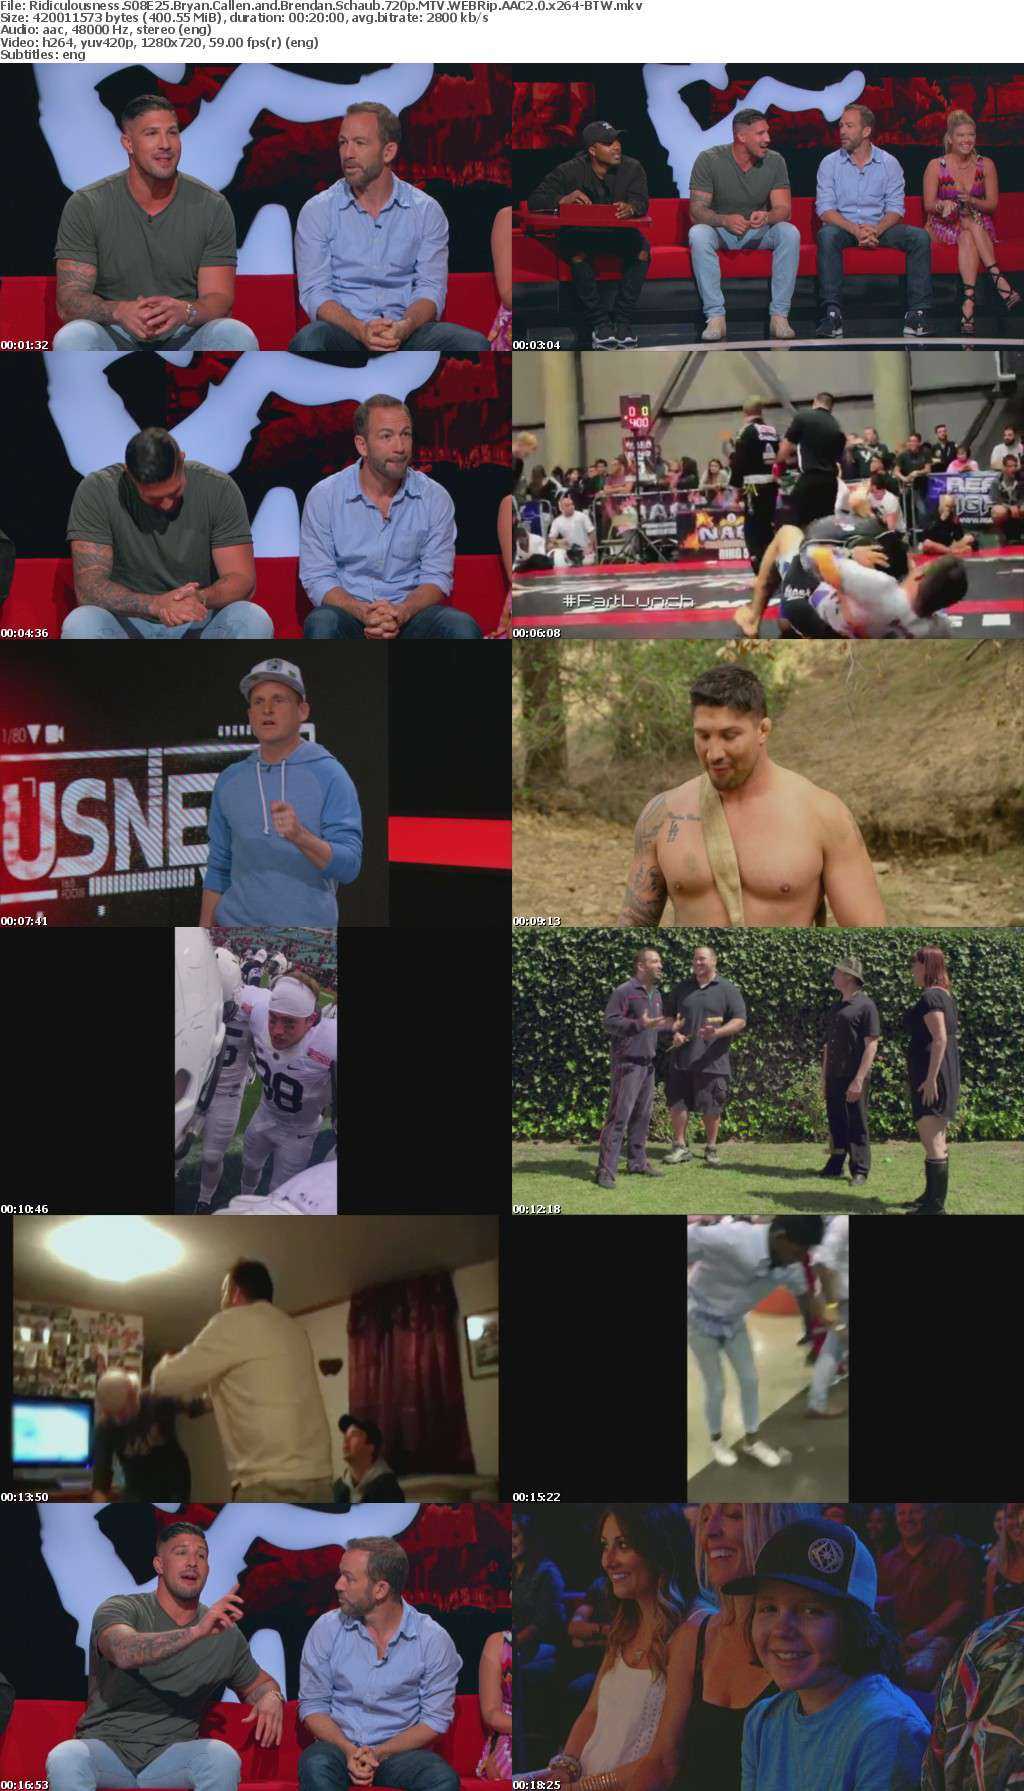 Ridiculousness S08E25 Bryan Callen and Brendan Schaub 720p MTV WEBRip AAC2 0 x264-BTW